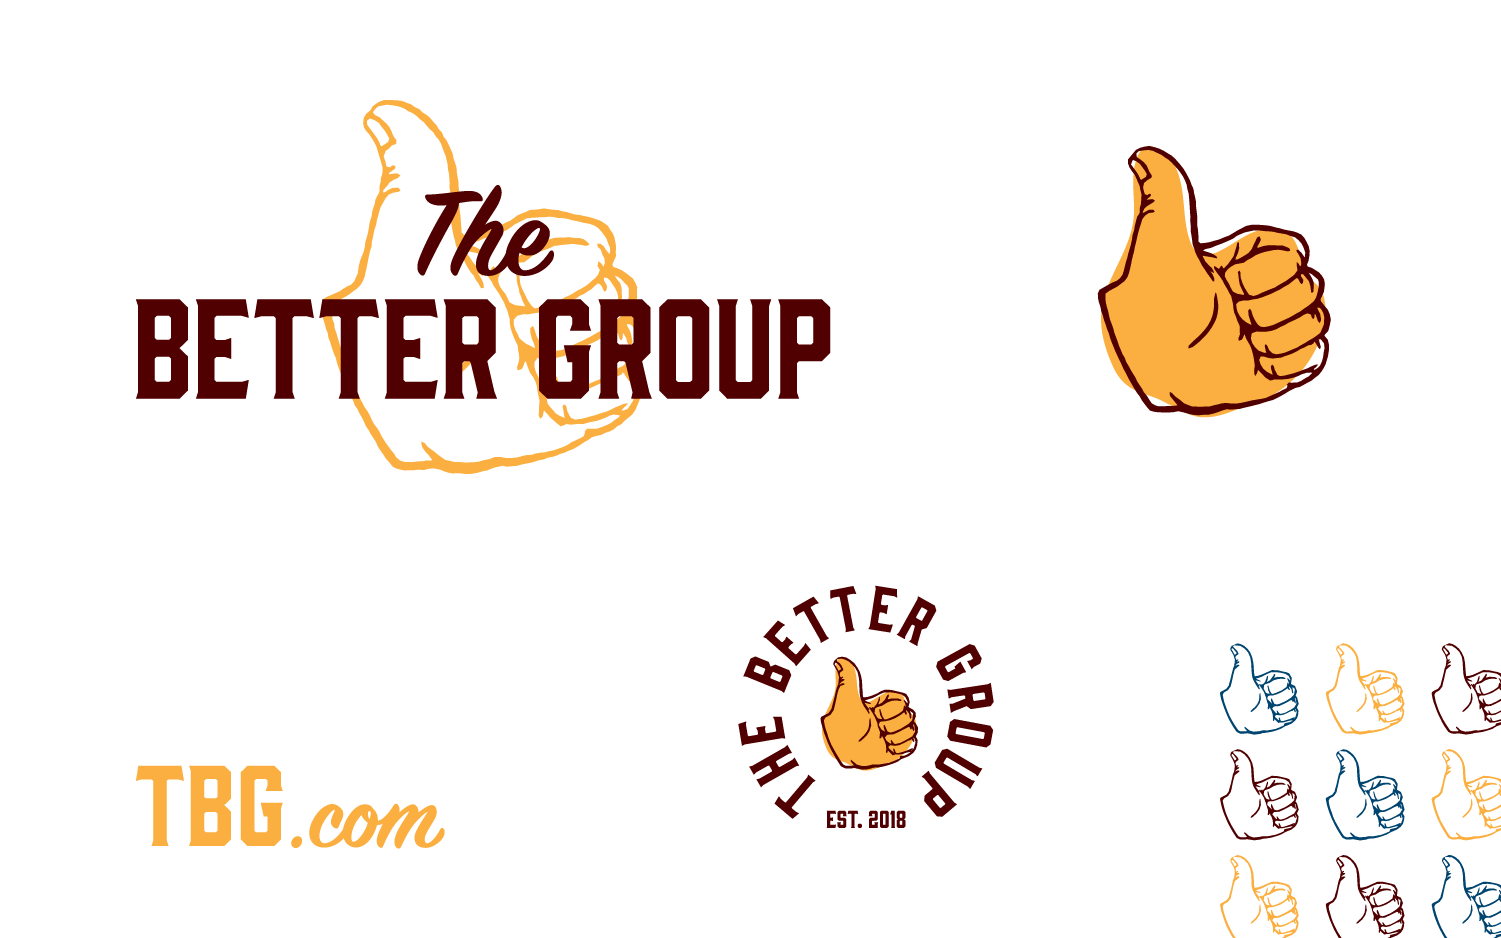 The Better Group, non-profit logo and branding lockups